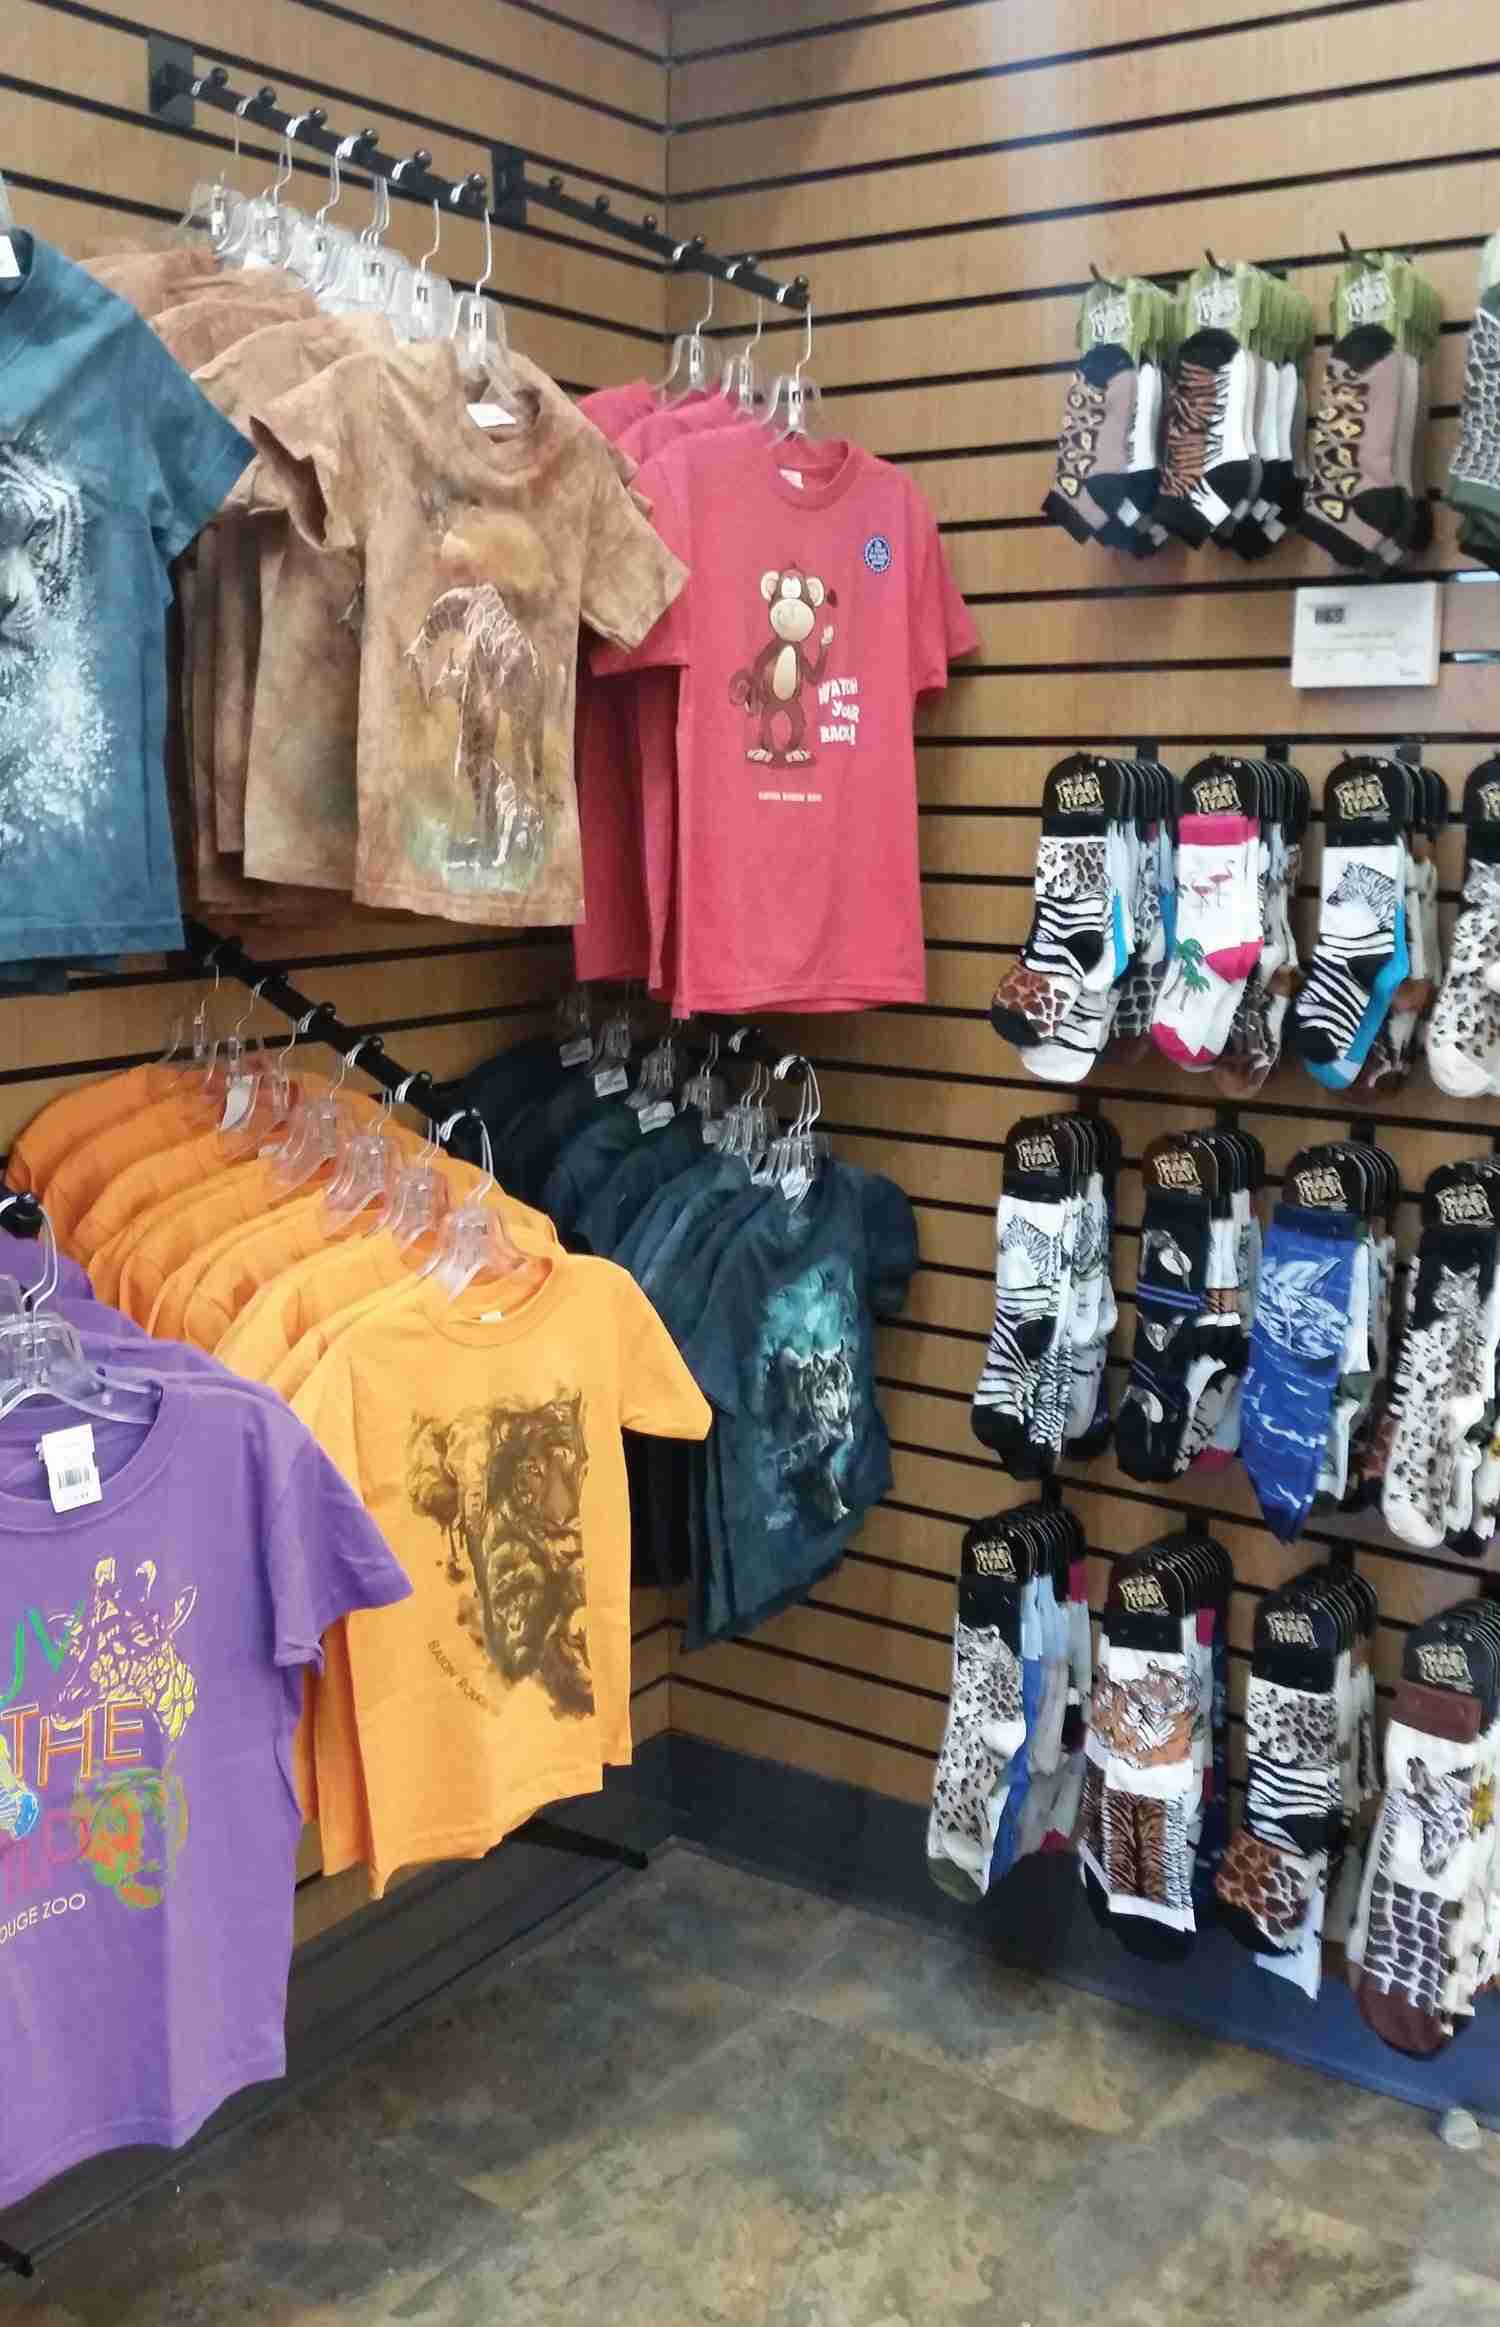 Fashion Accessories at Zoos<br> Selling Sunglasses, Socks and Hats